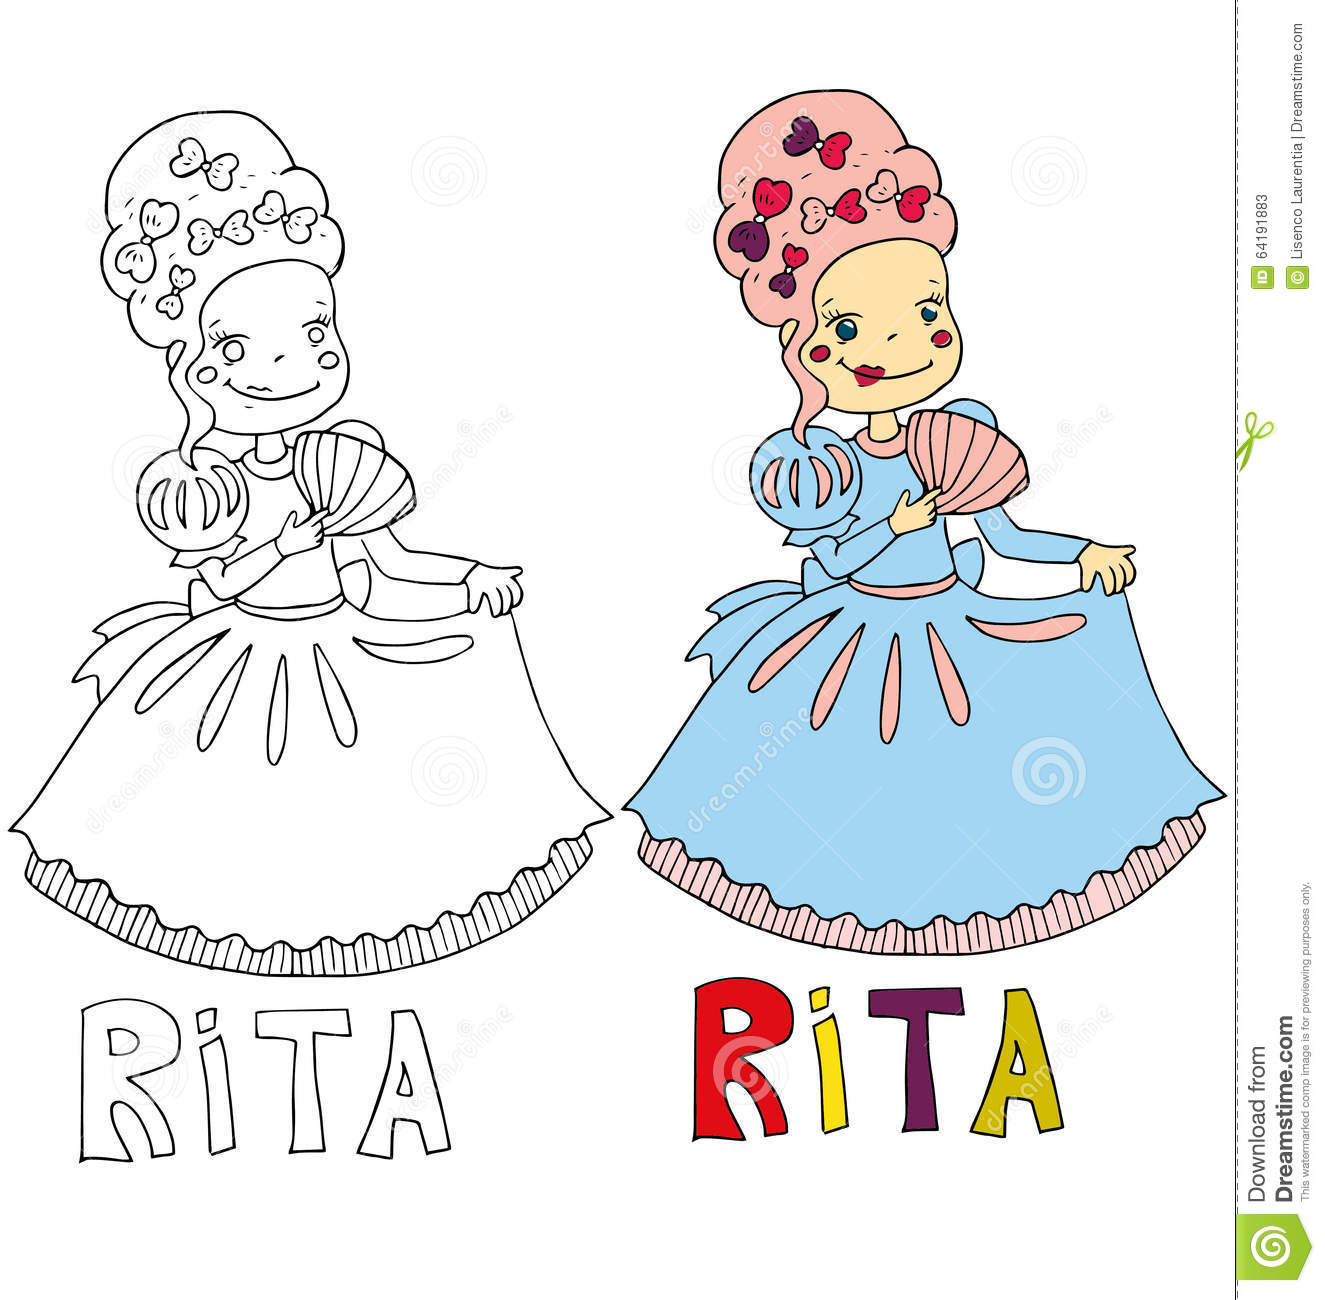 the simple drawing cartoon for coloring image of children with different names in the compatibility with the character - Cartoon Drawing For Children